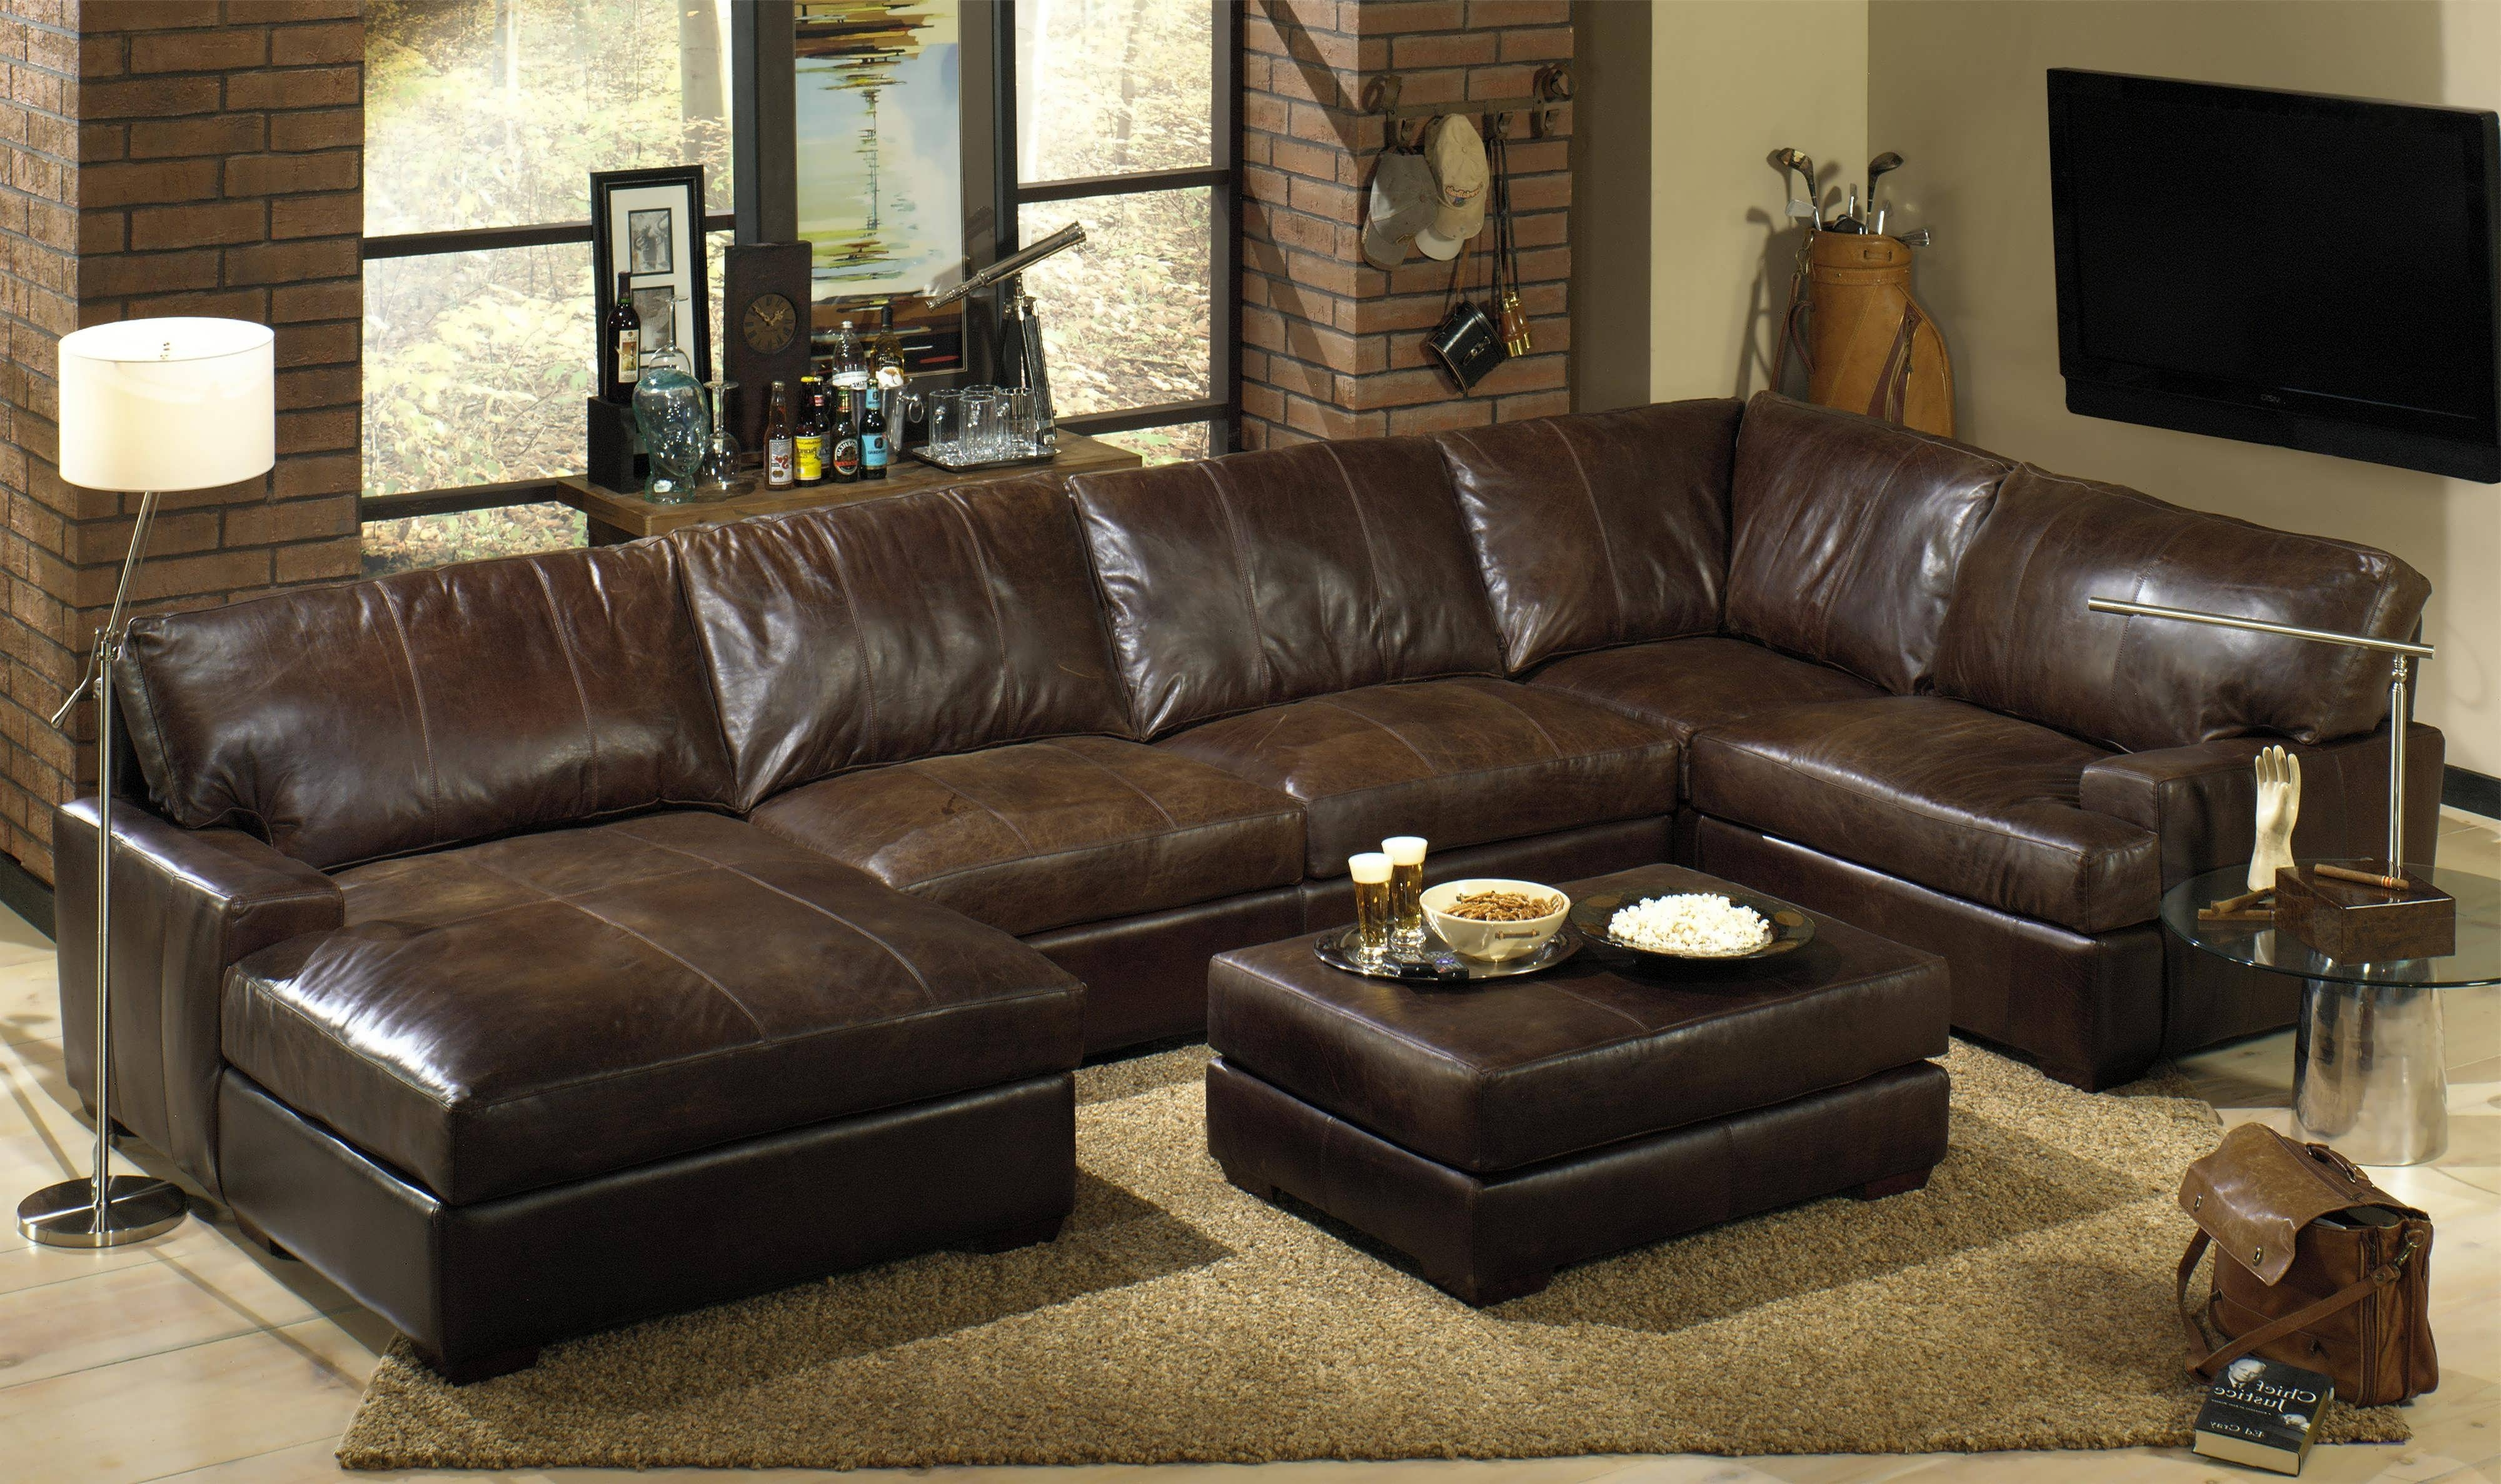 Famous Sofa : Small Chaise Sofa Small Leather Sectional Cheap Sectional Throughout Leather Sectional Sofas With Chaise (View 5 of 15)